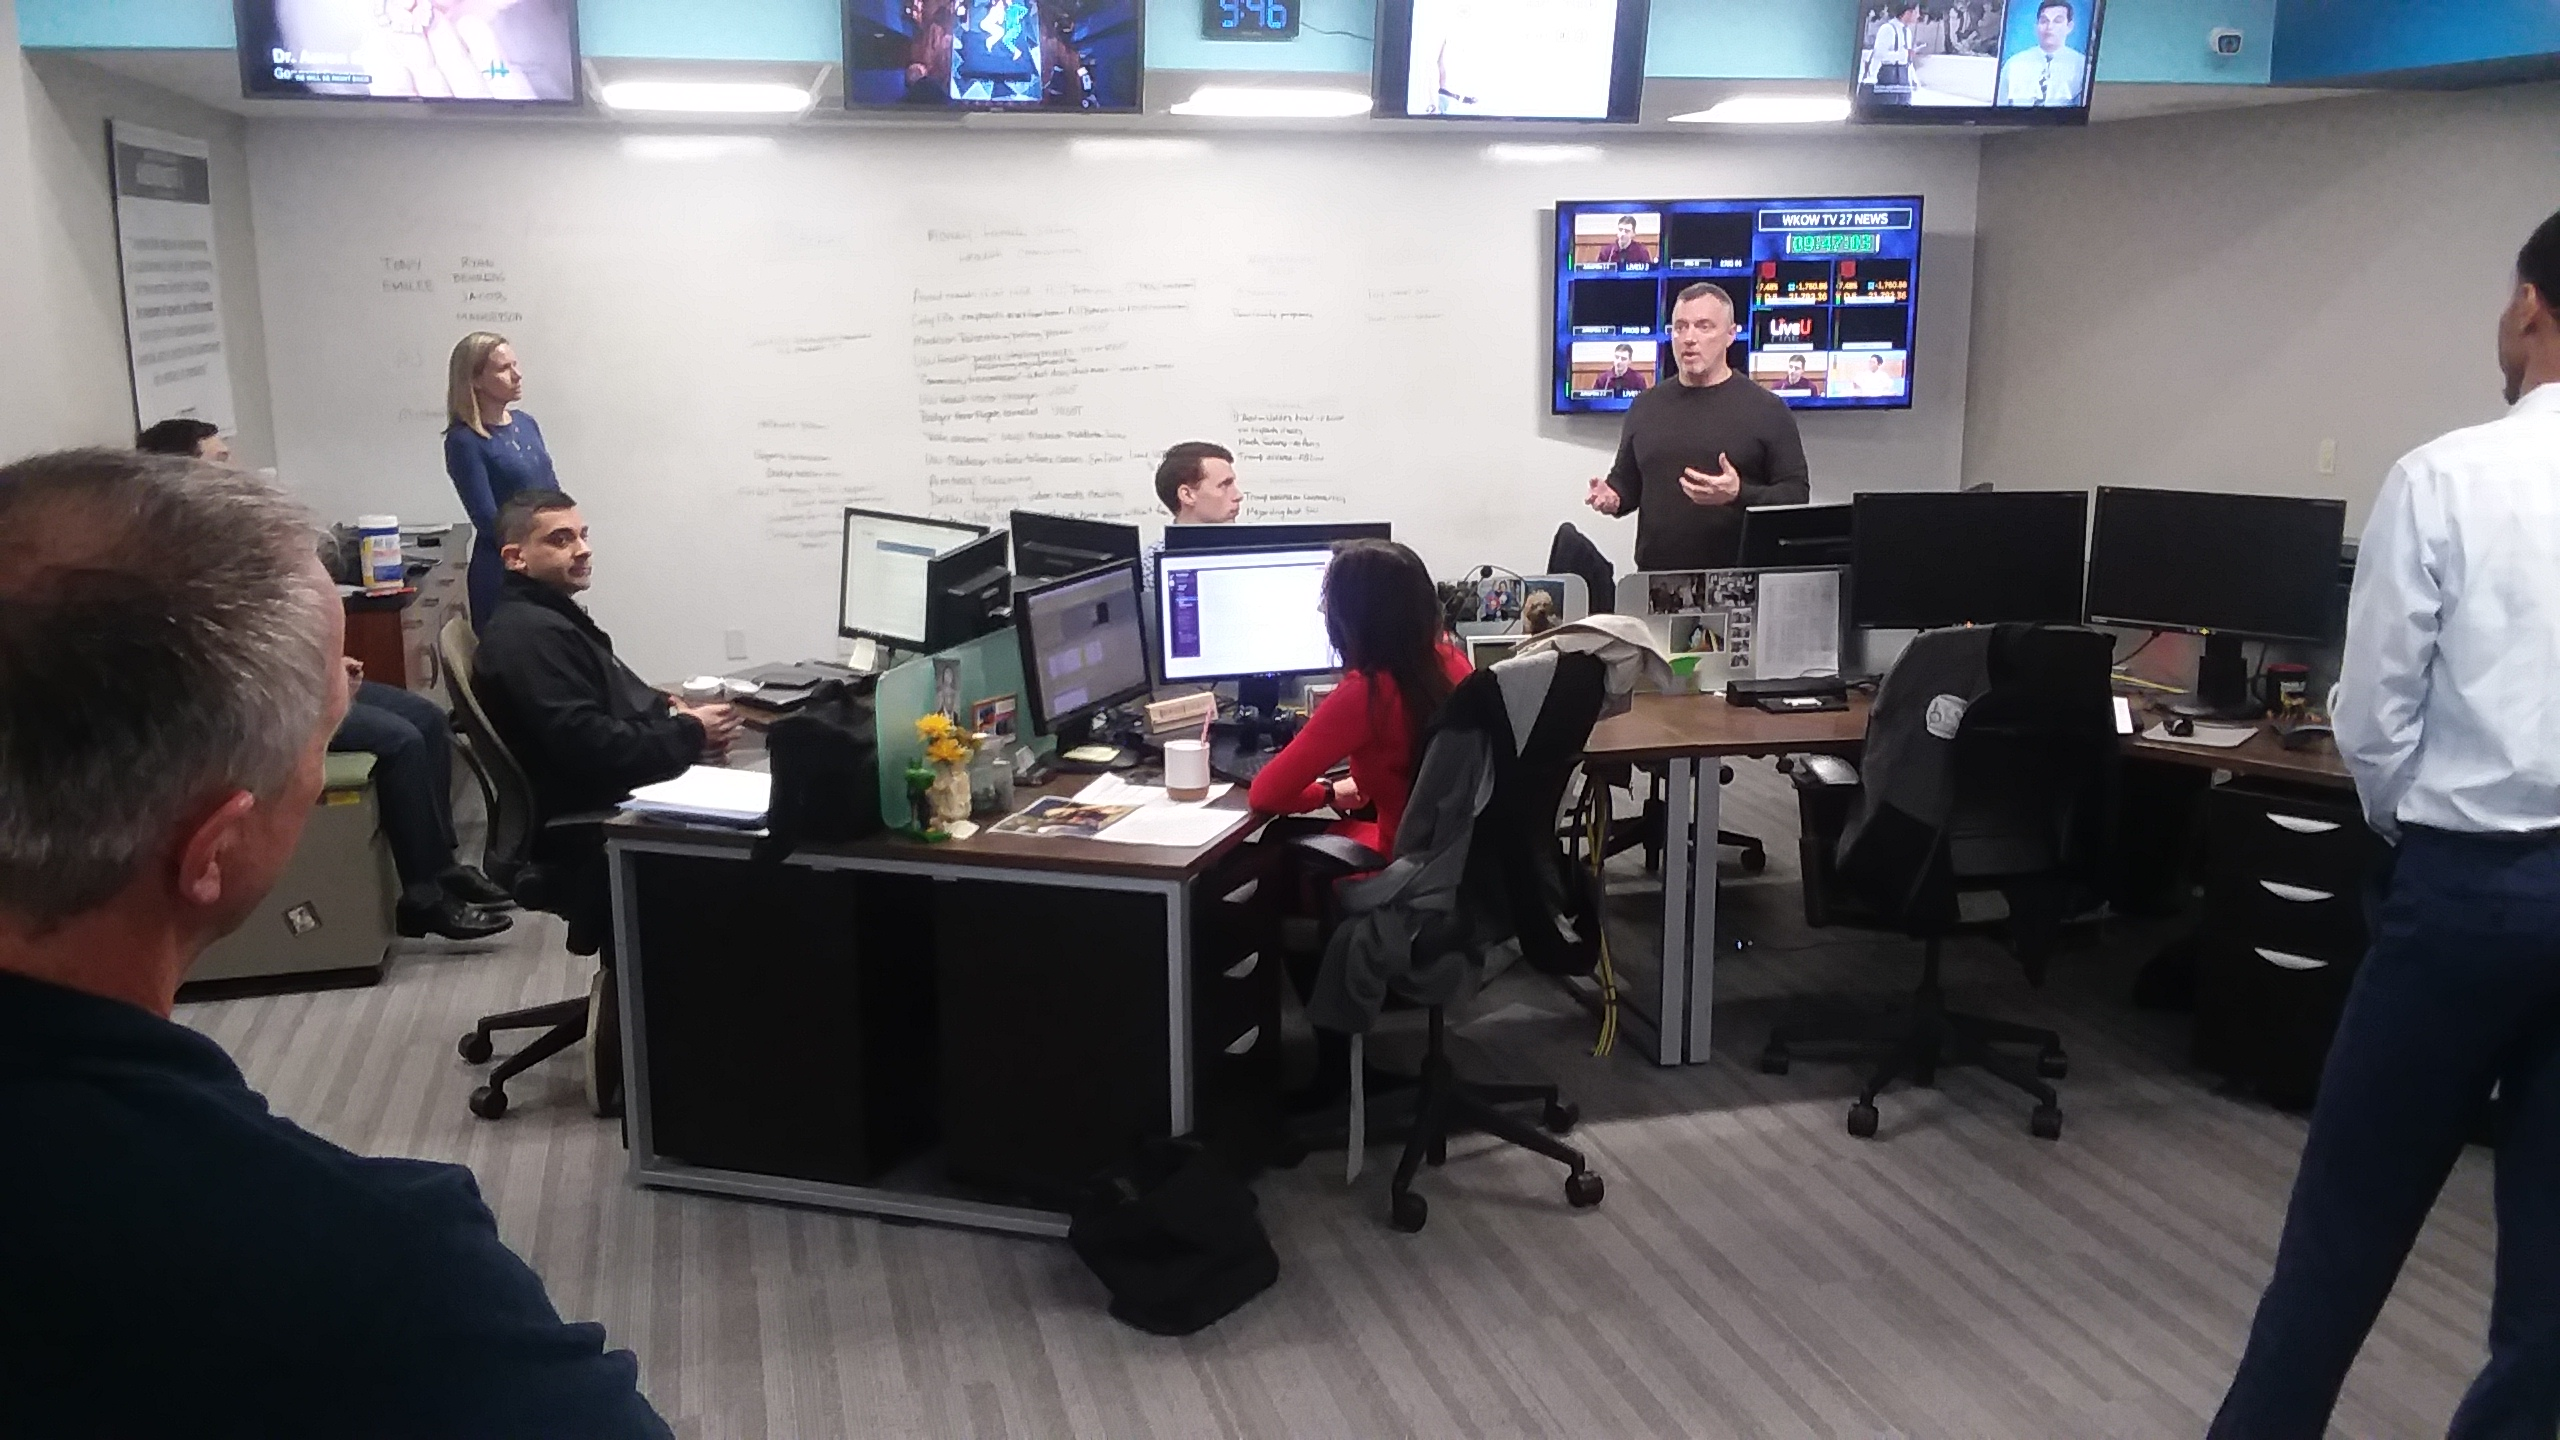 News director Ed Reams of 27 News leads the afternoon staff meeting March 12, 2020, one of the last times the full staff met together in person.